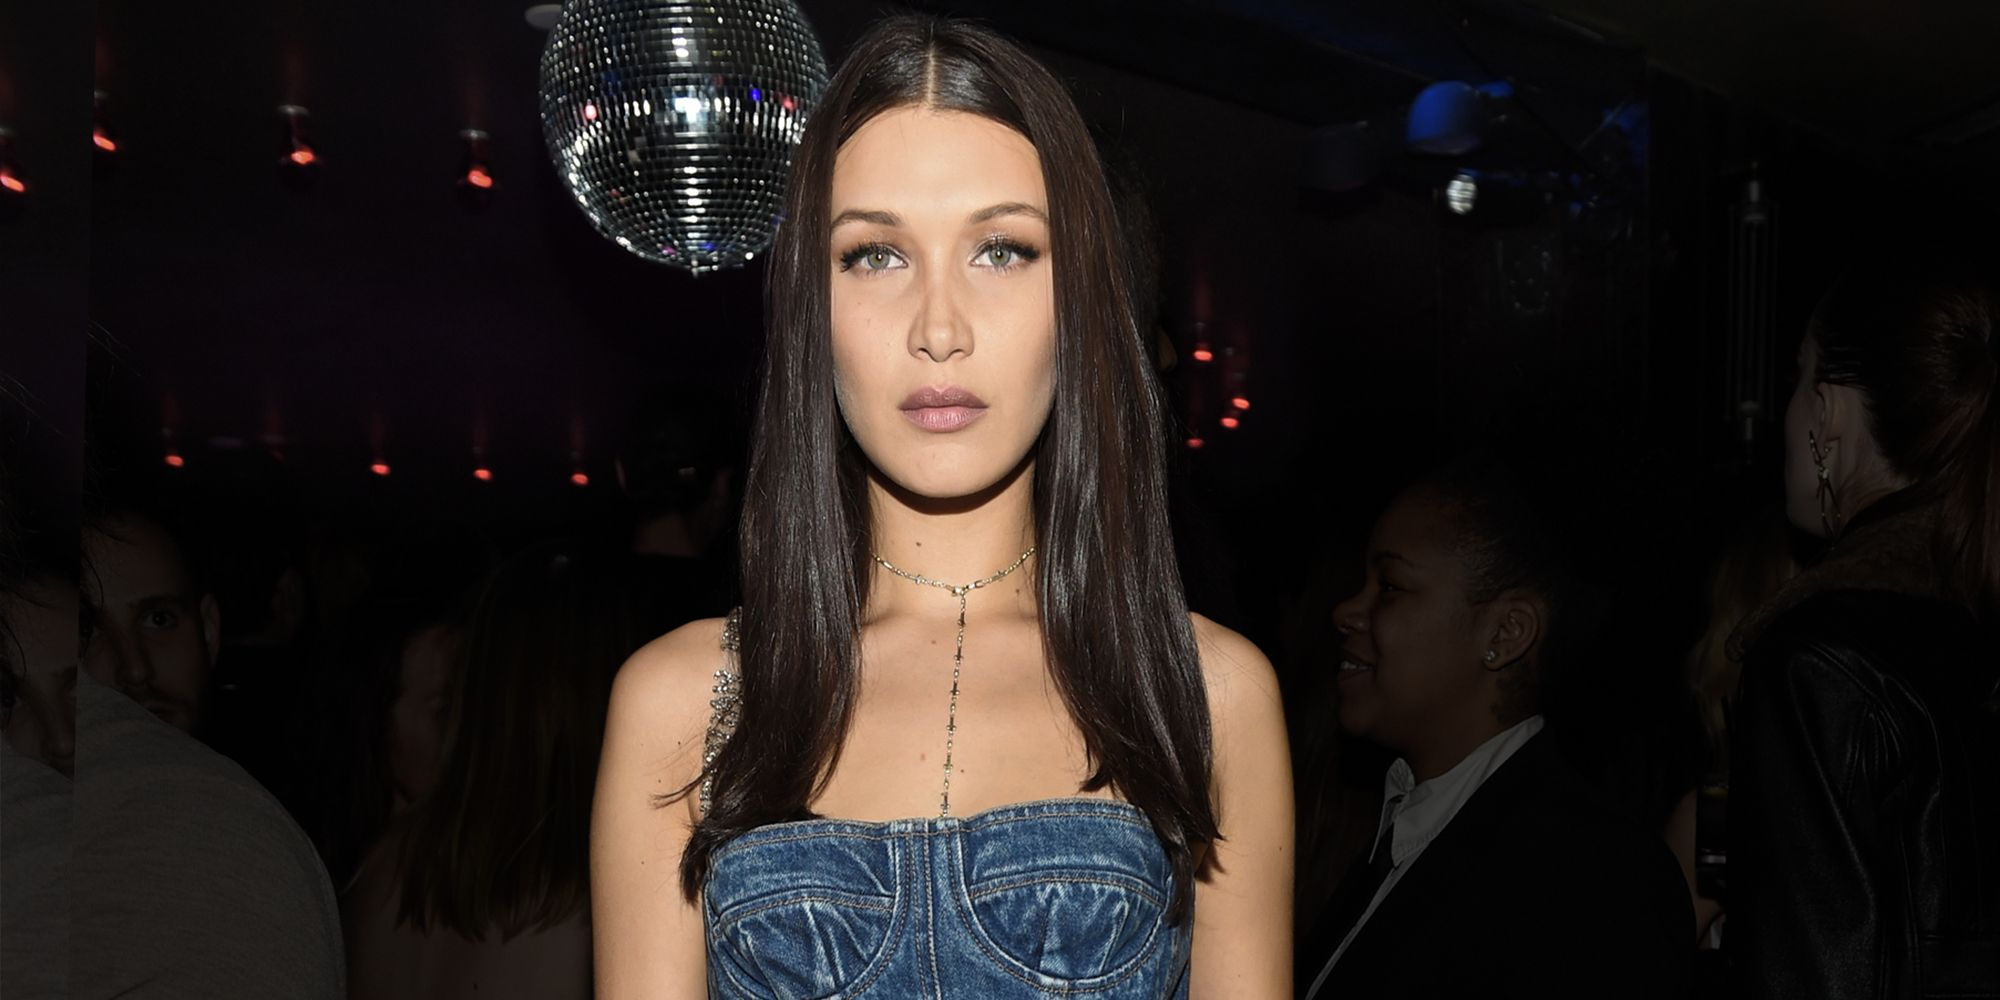 hbz bella hadid 24 hours 00 index